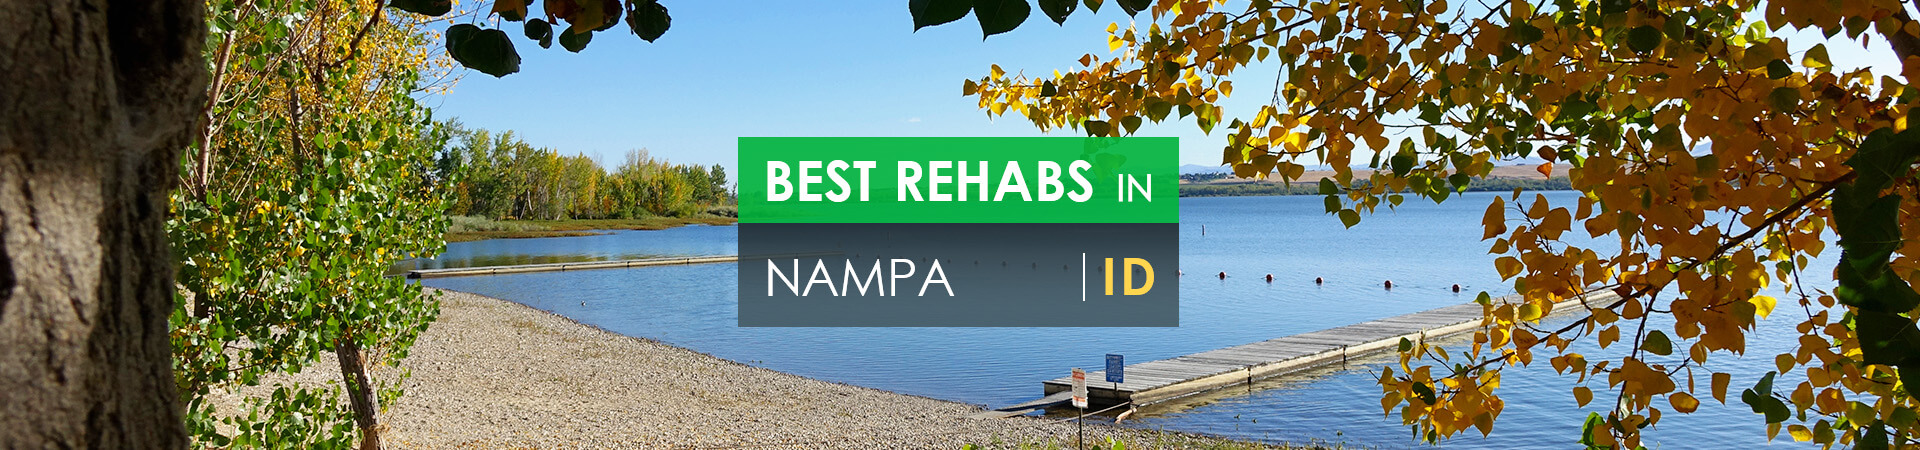 Best rehabs in Nampa, ID